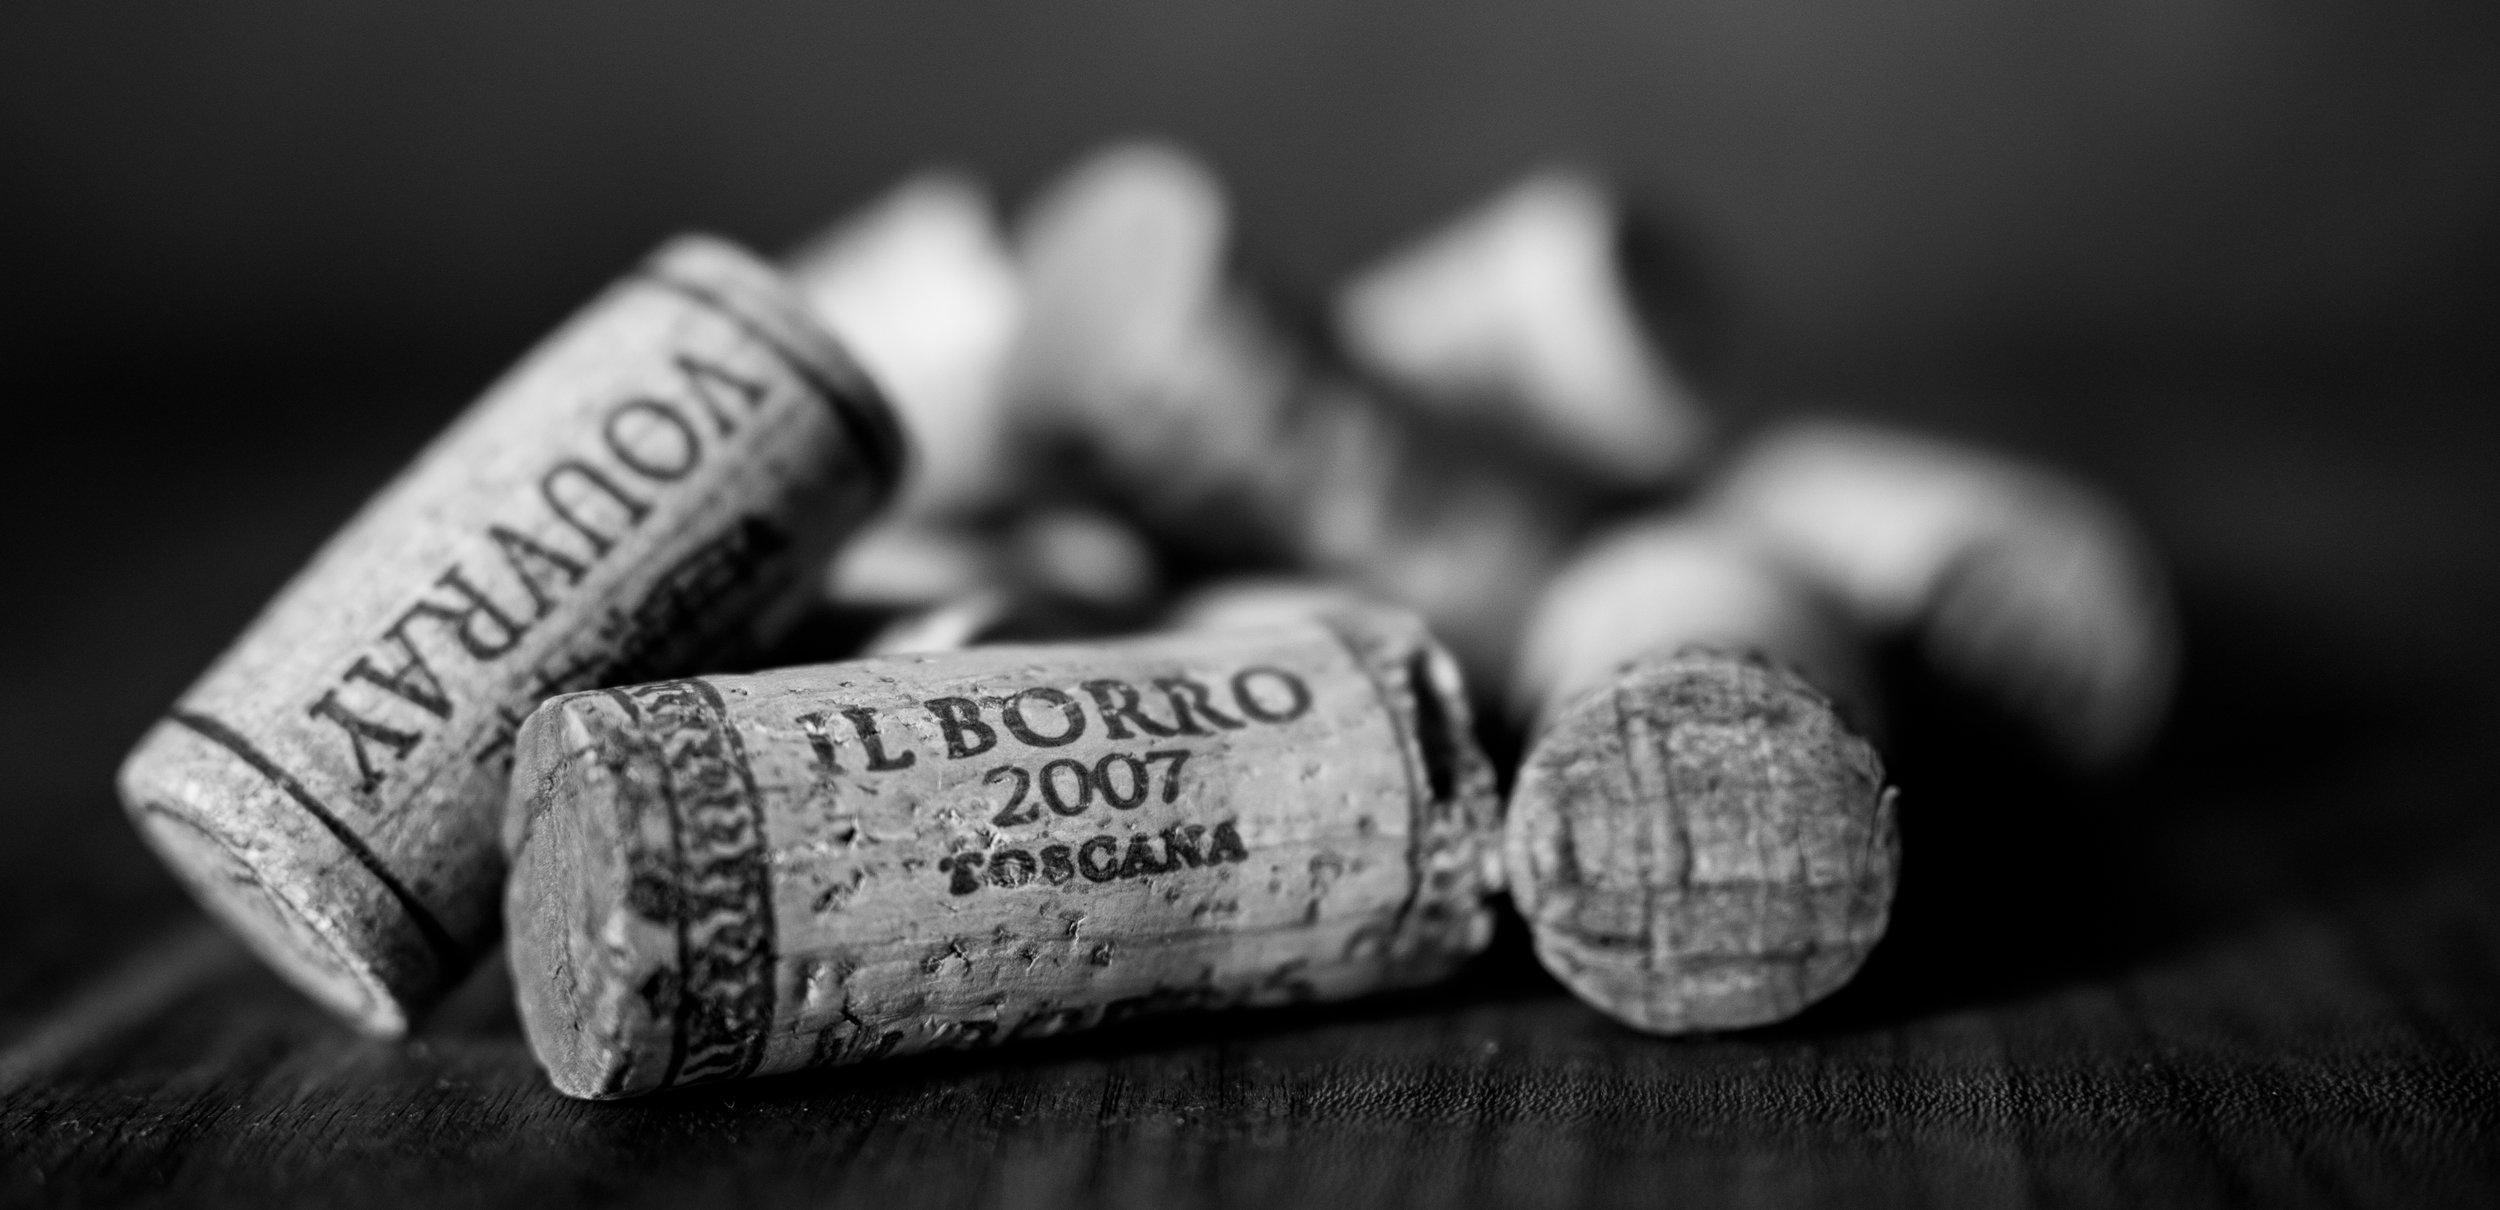 Musings by the Glass - Vinous Deduction Theorem - Cork Pile